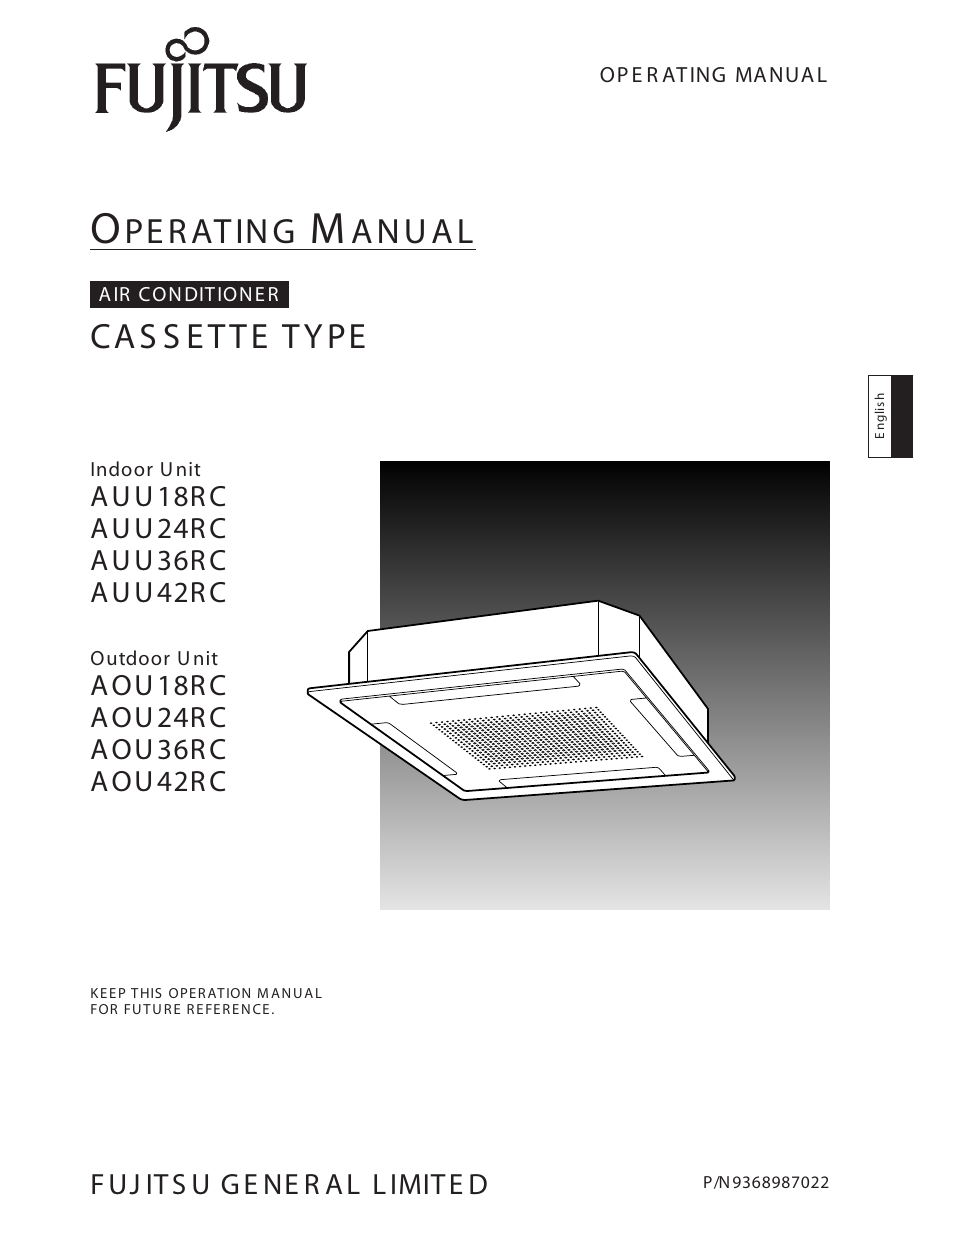 FUJITSU AOU36RC User Manual | 19 pages | Also for: AOU42RC, AUU36RC,  AOU18RC, AUU18RC, AUU42RC, AUU24RC, AOU24RC